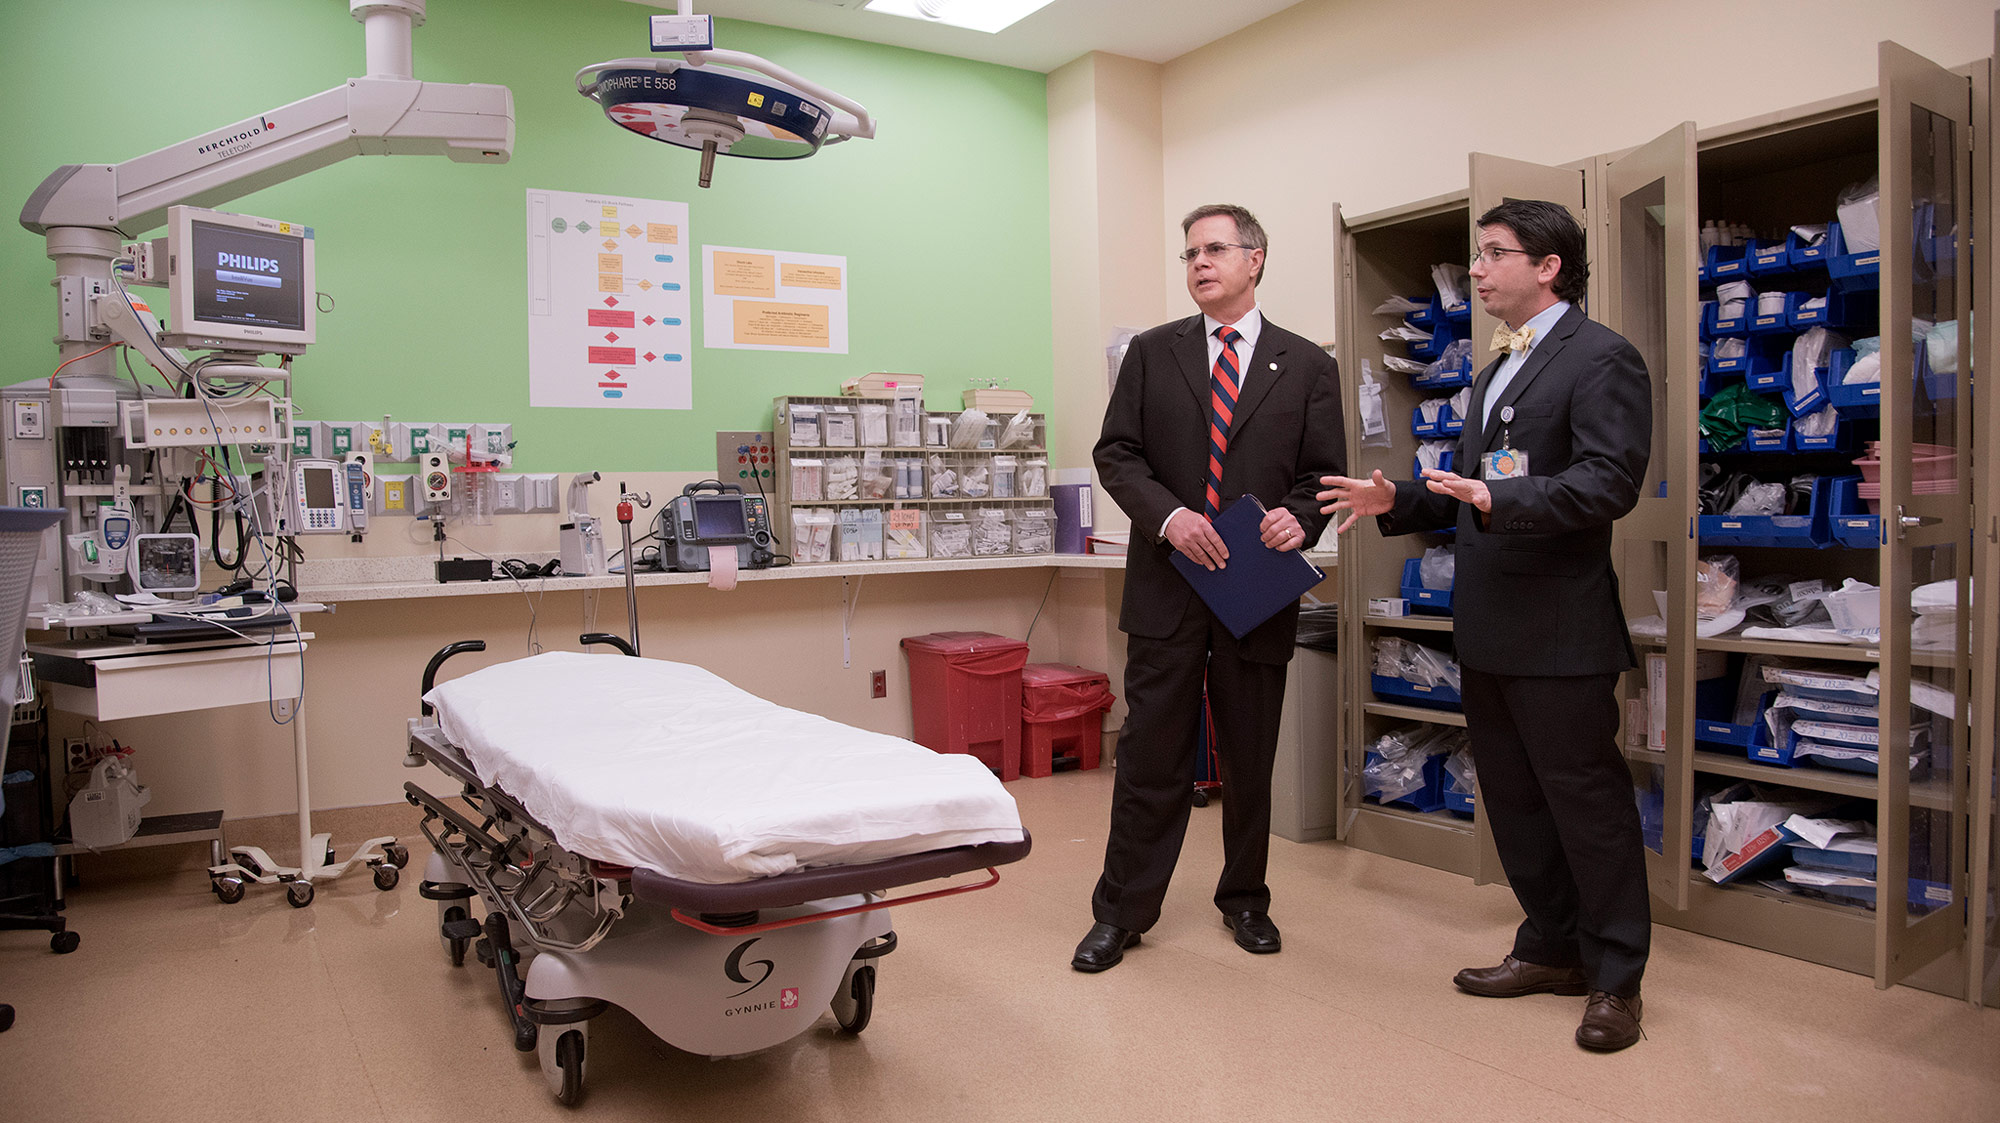 Chancellor Jeff Vitter visits the University of Mississippi Medical Center